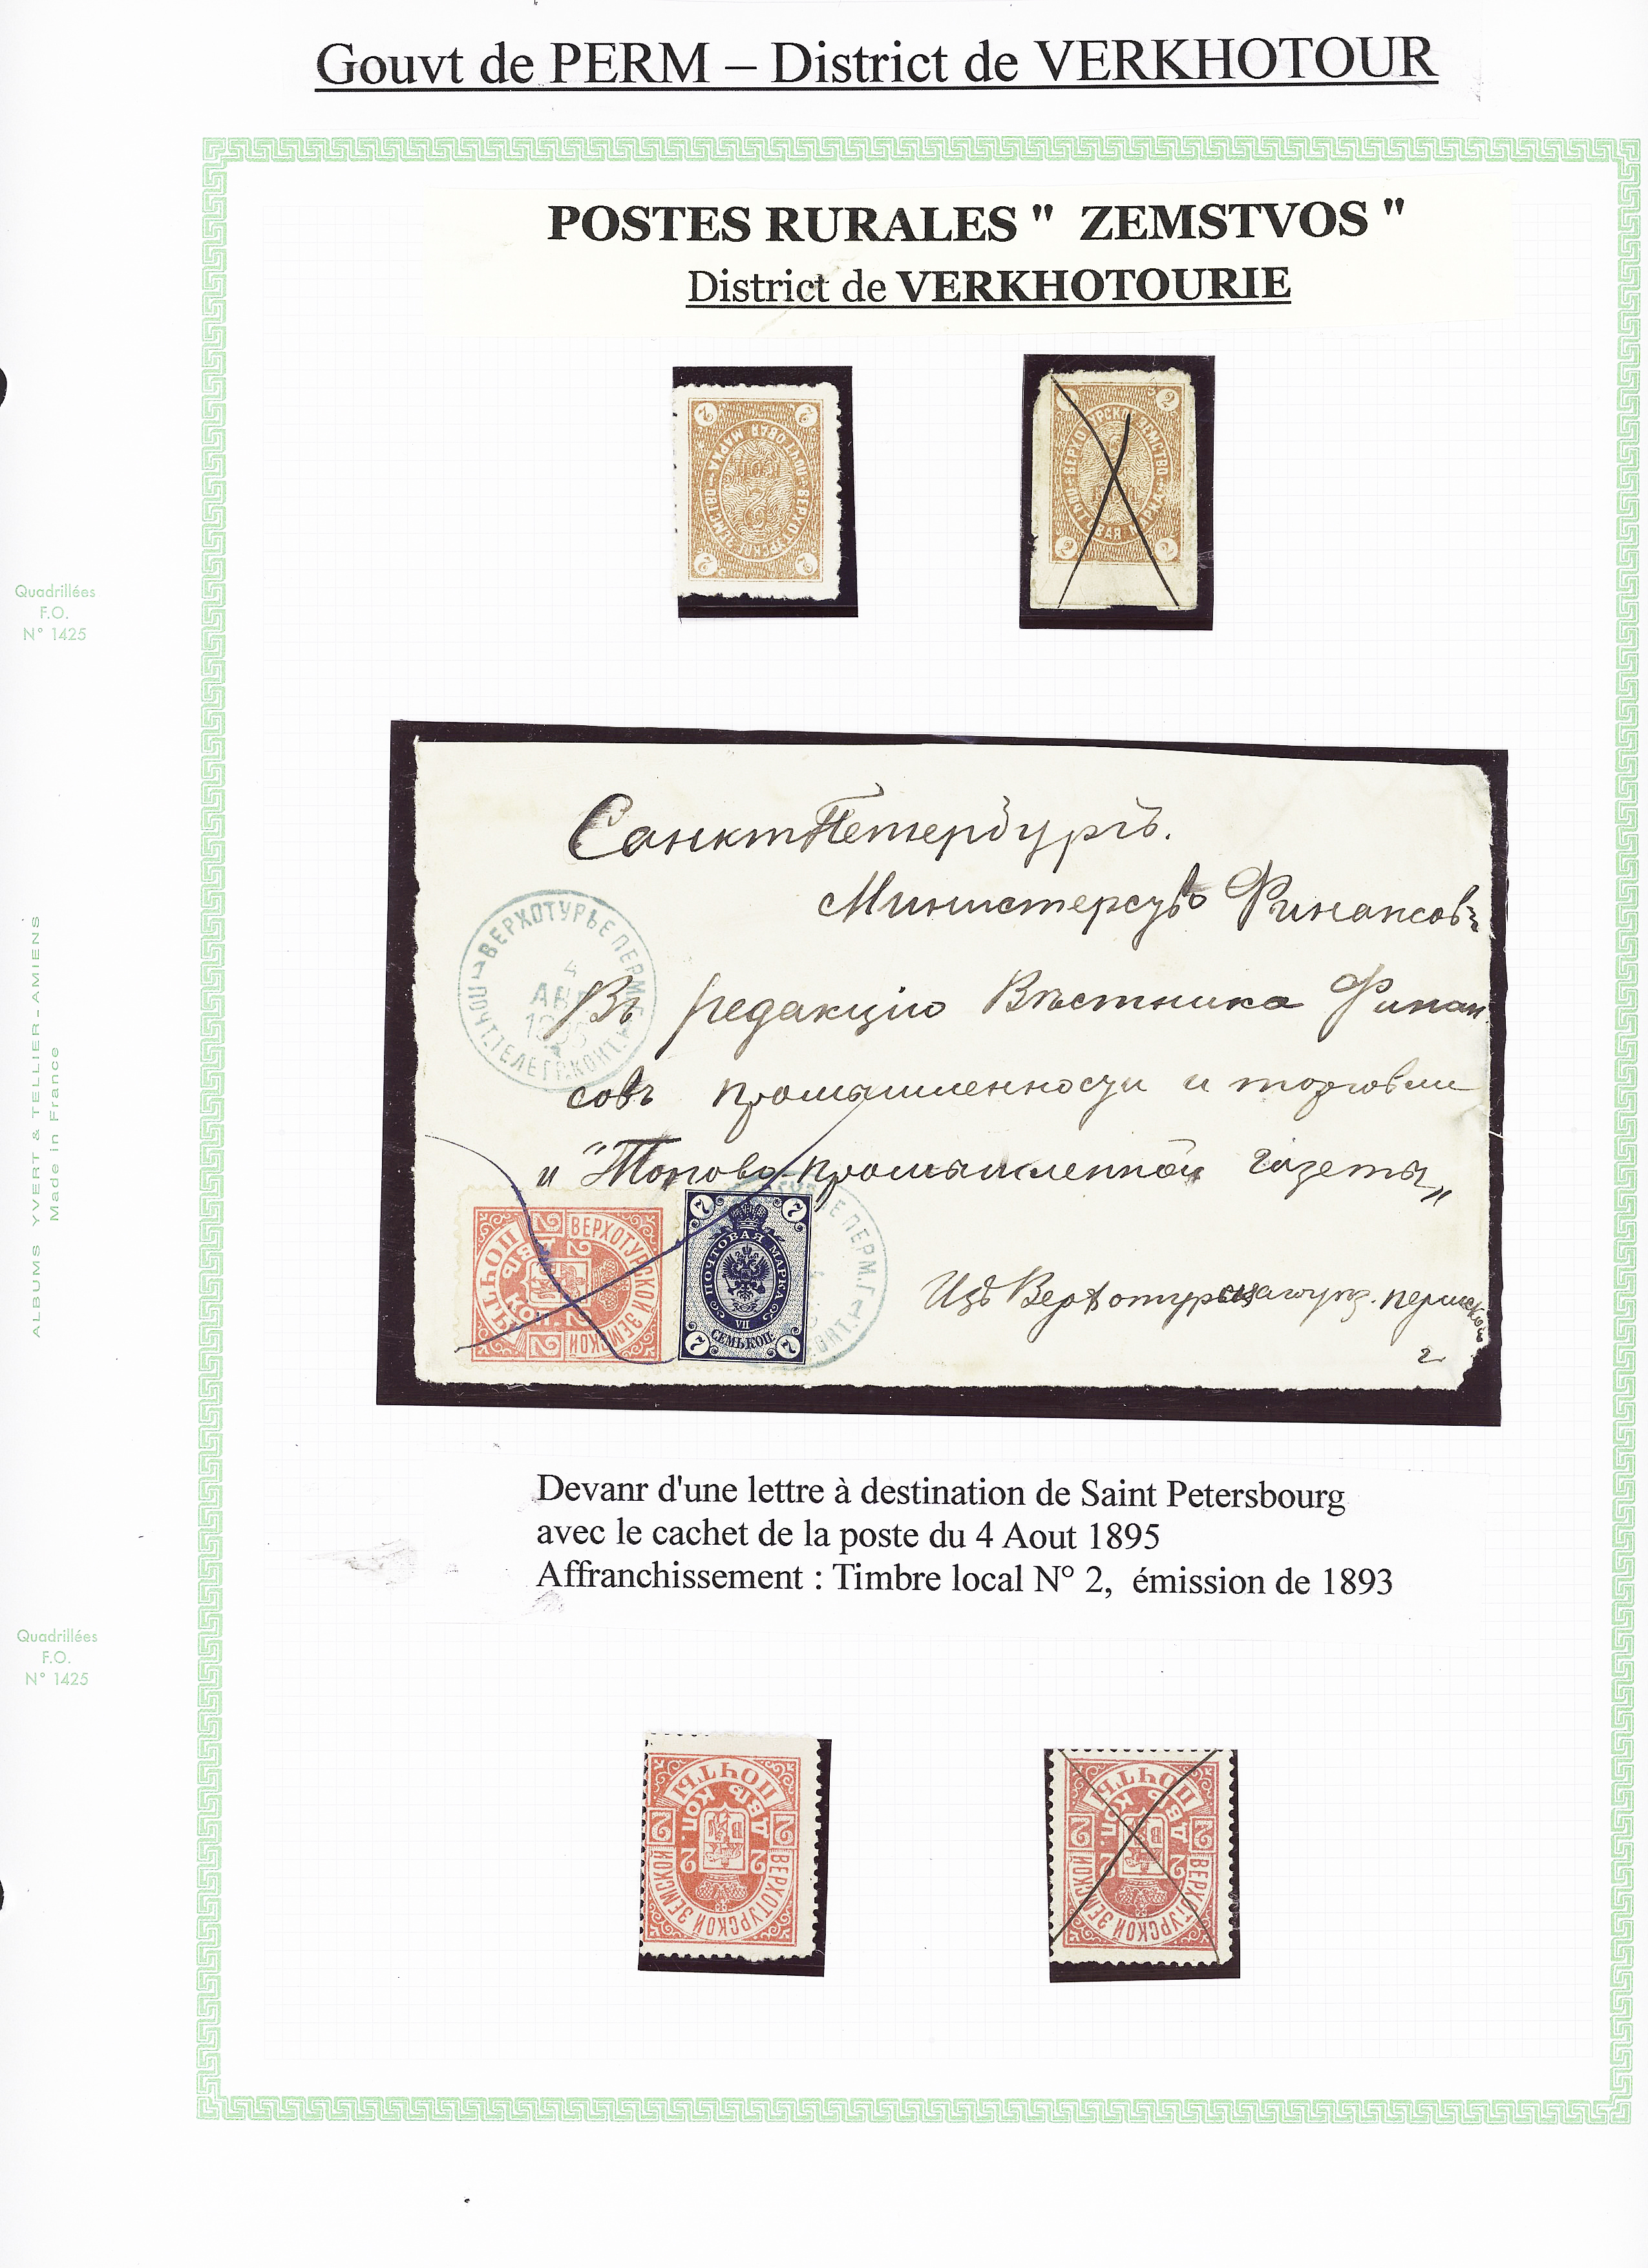 Lot 588 - Eastern Europe » RUSSIA - ZEMSTVOS » Verkhoturye (Perm Government)  -  Le Timbre Classique SA SALE ON OFFERS N ° 37 PARIS